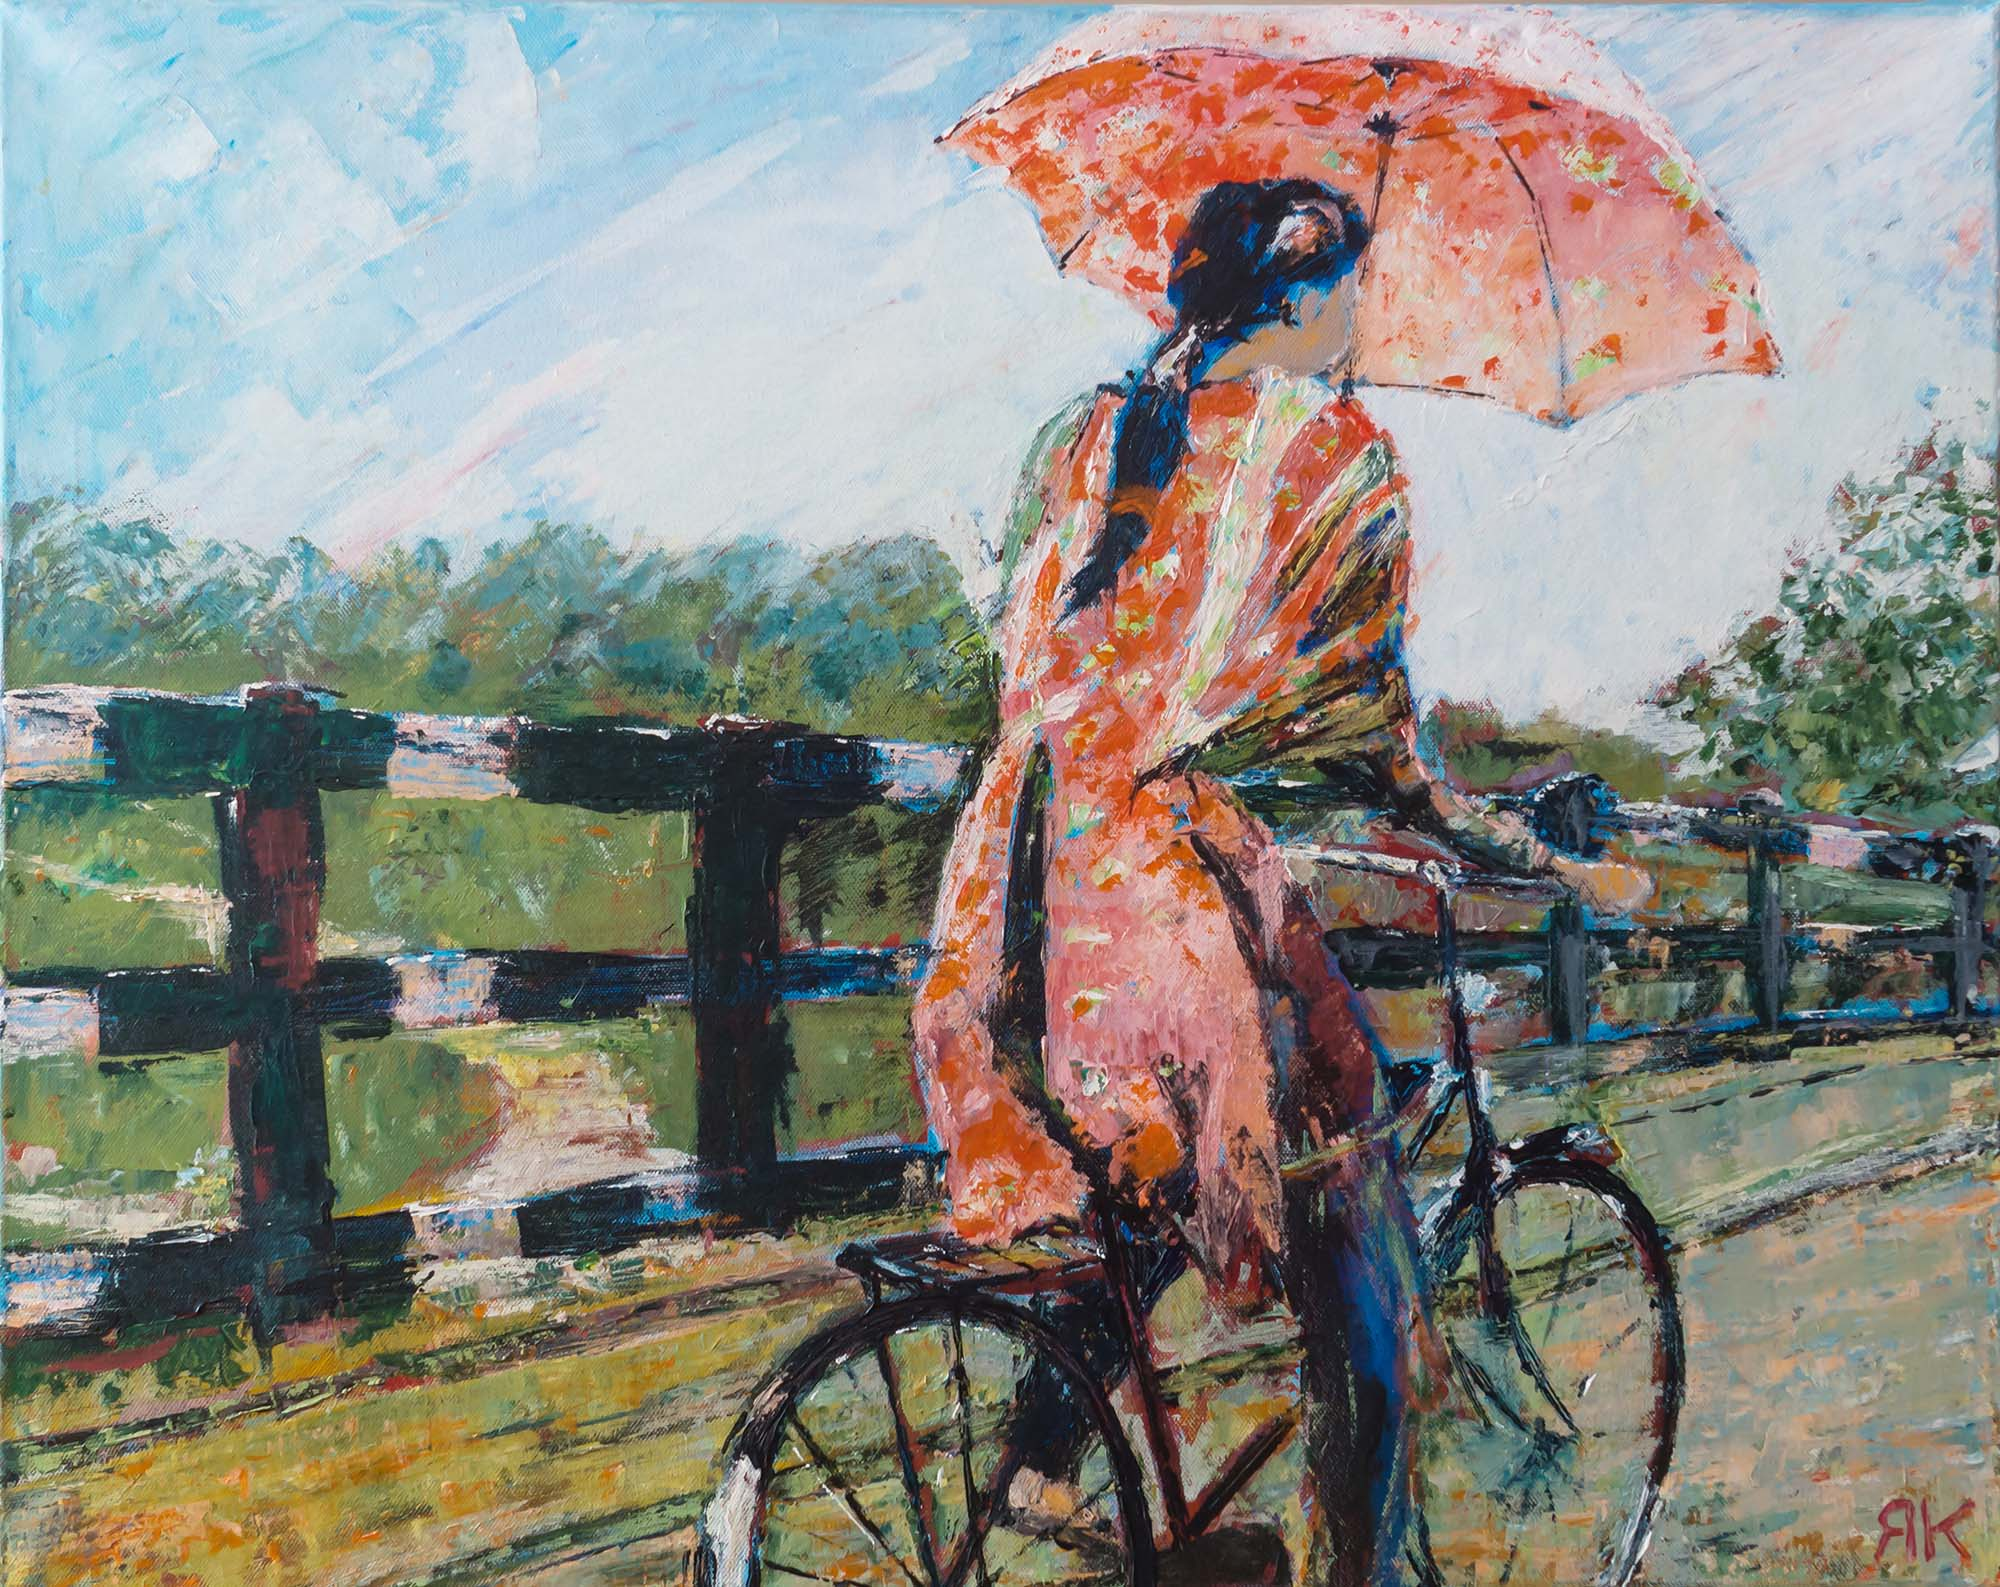 Vietnamese woman with umbrella on bicycle by Ria Kieboom